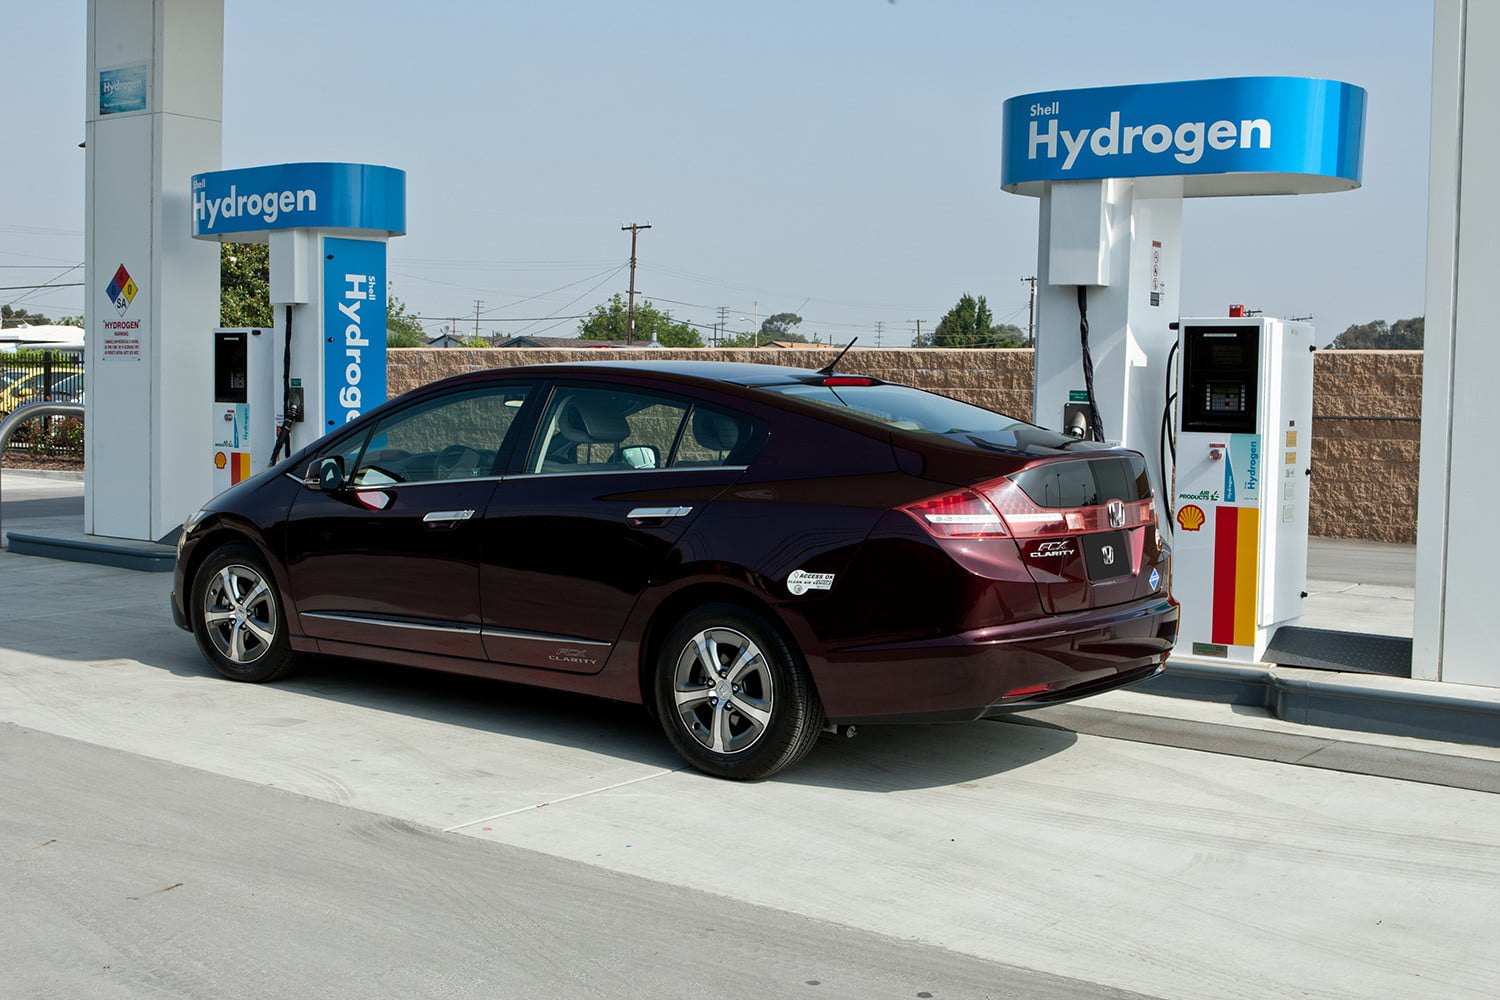 Hydrogen fuel cell vehicles are thriving in California